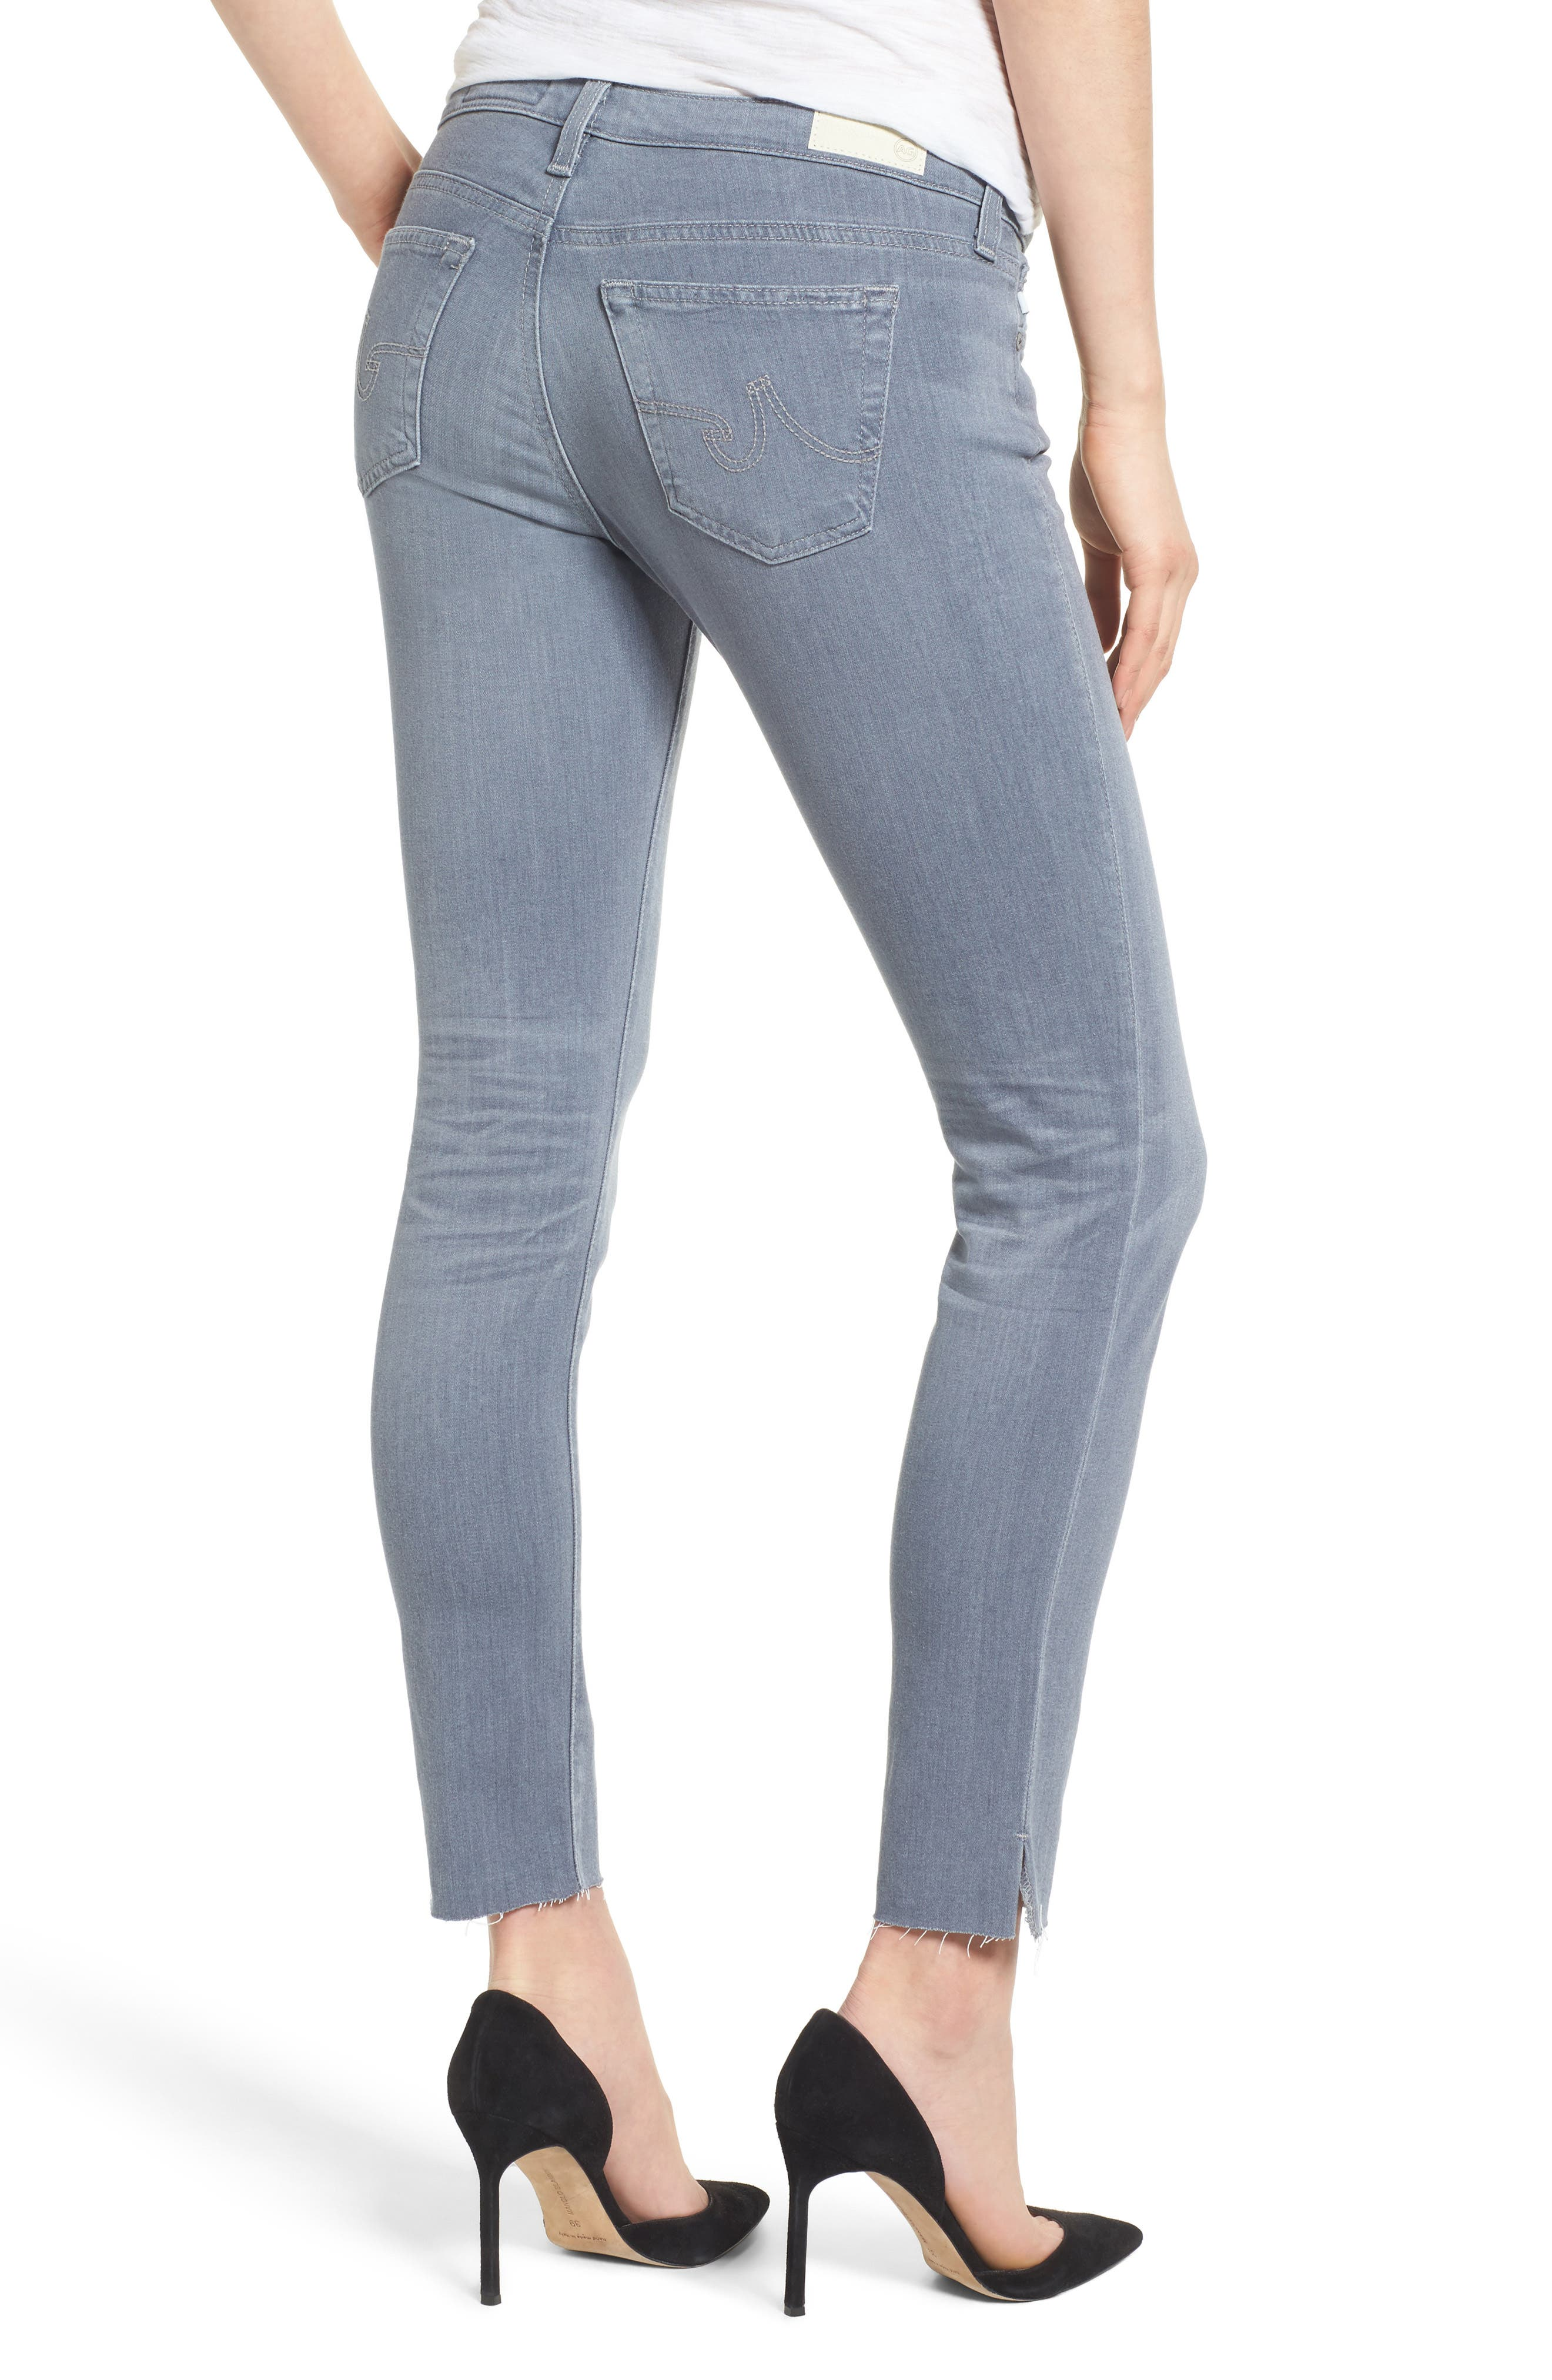 Alternate Image 2  - AG The Legging Ankle Super Skinny Jeans (10 Year Wind Chill)